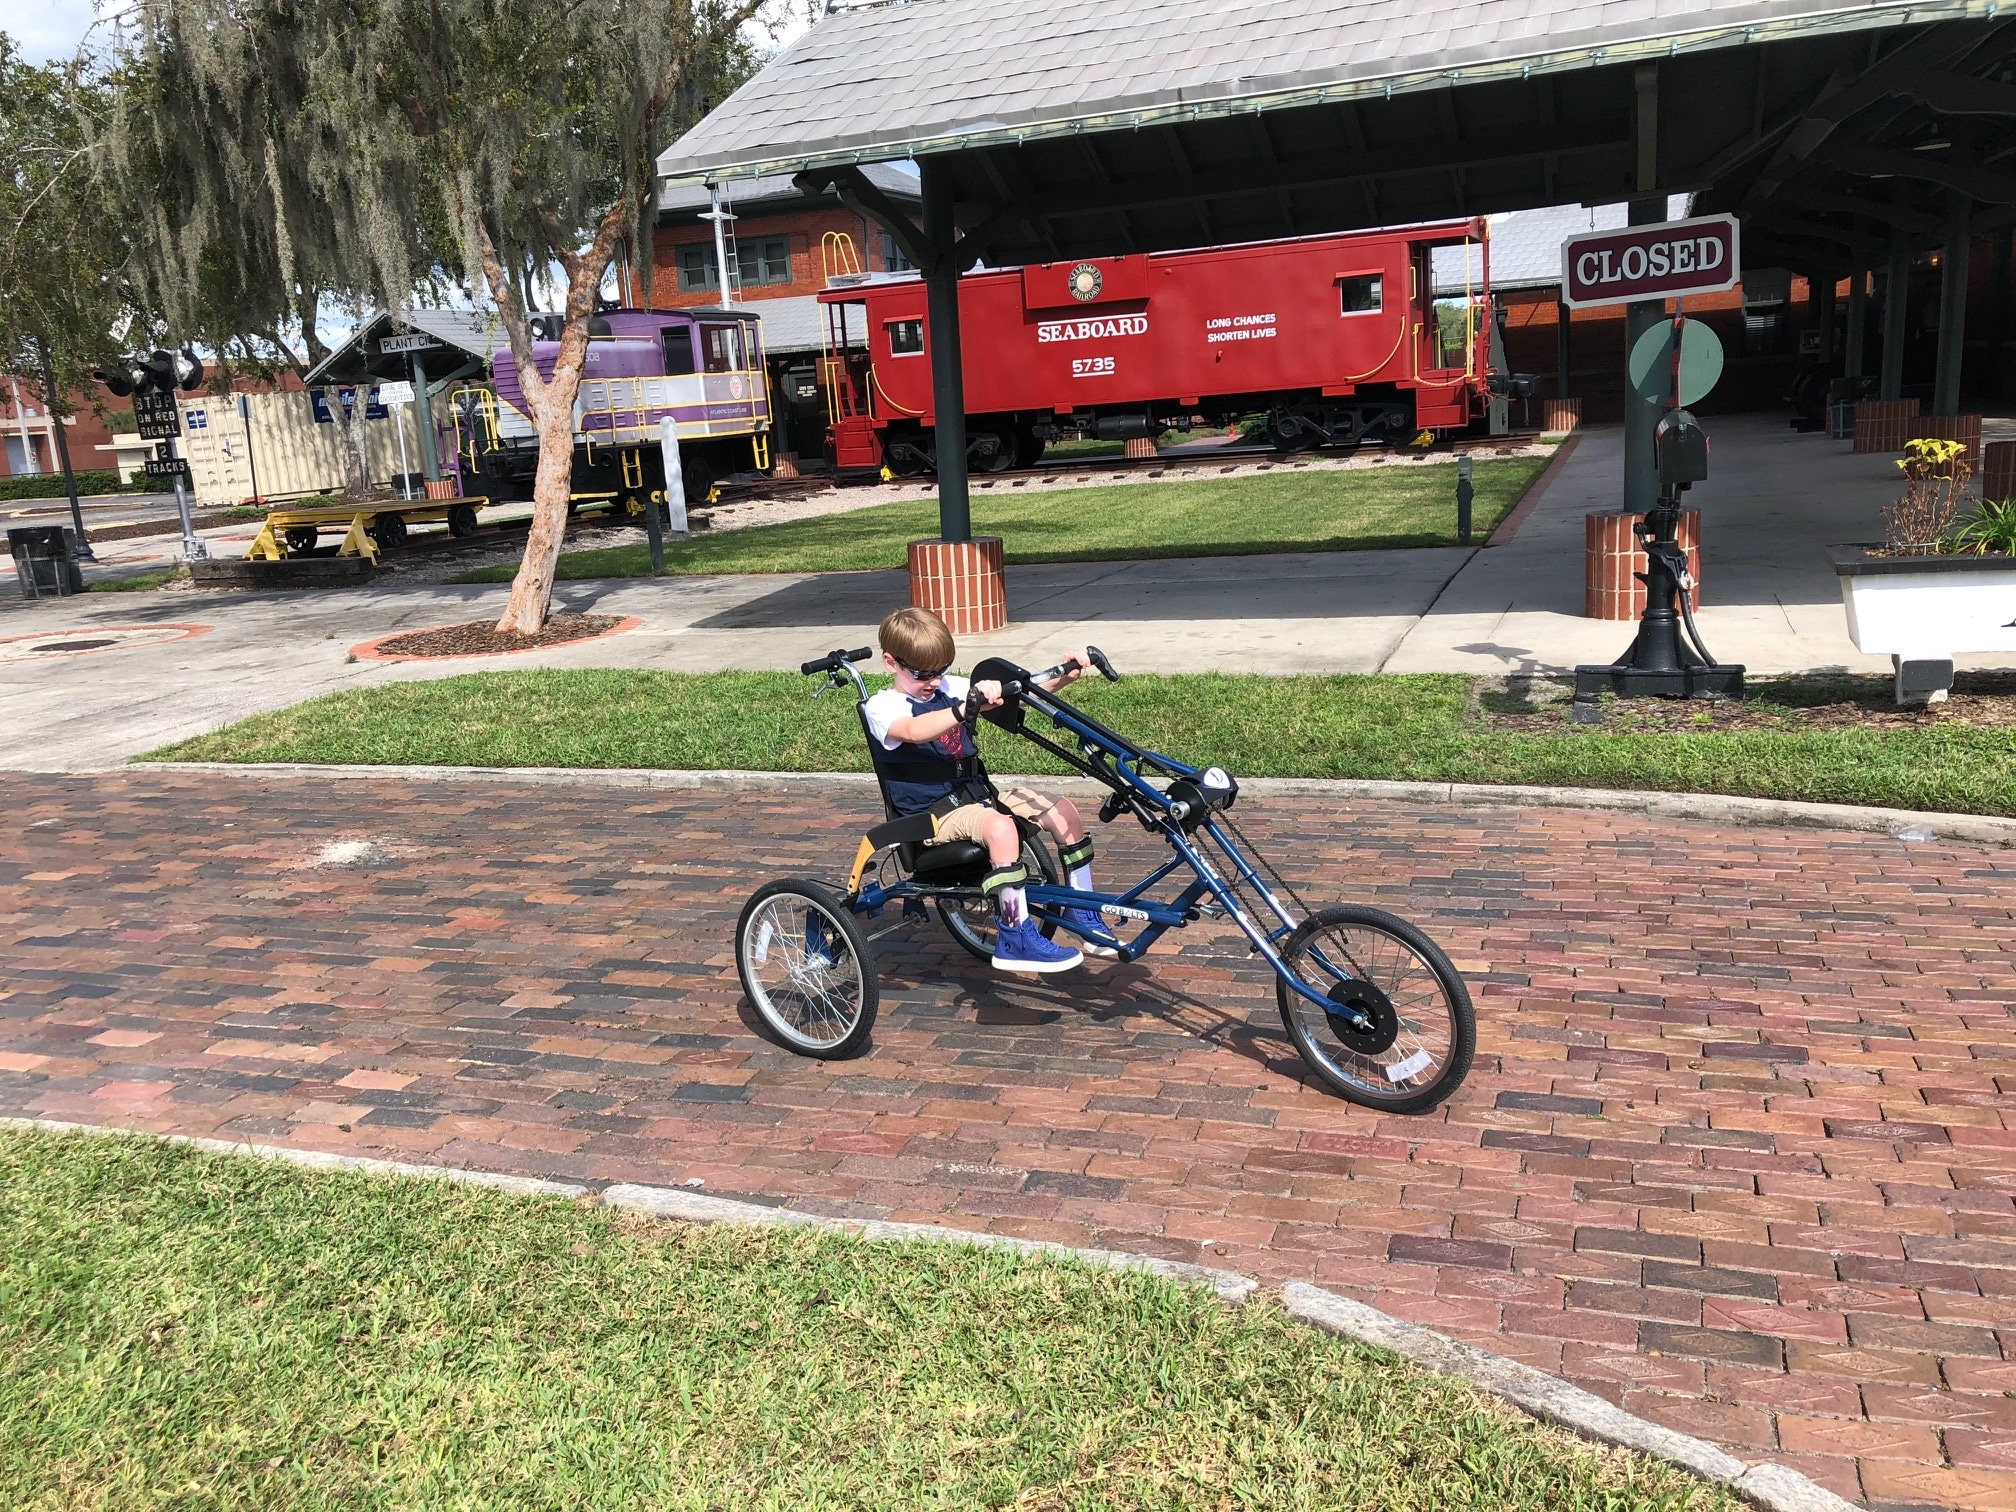 A 9-year-old boy on his three-wheeled handcycle riding down a brick sidewalk with a train caboose in the background.